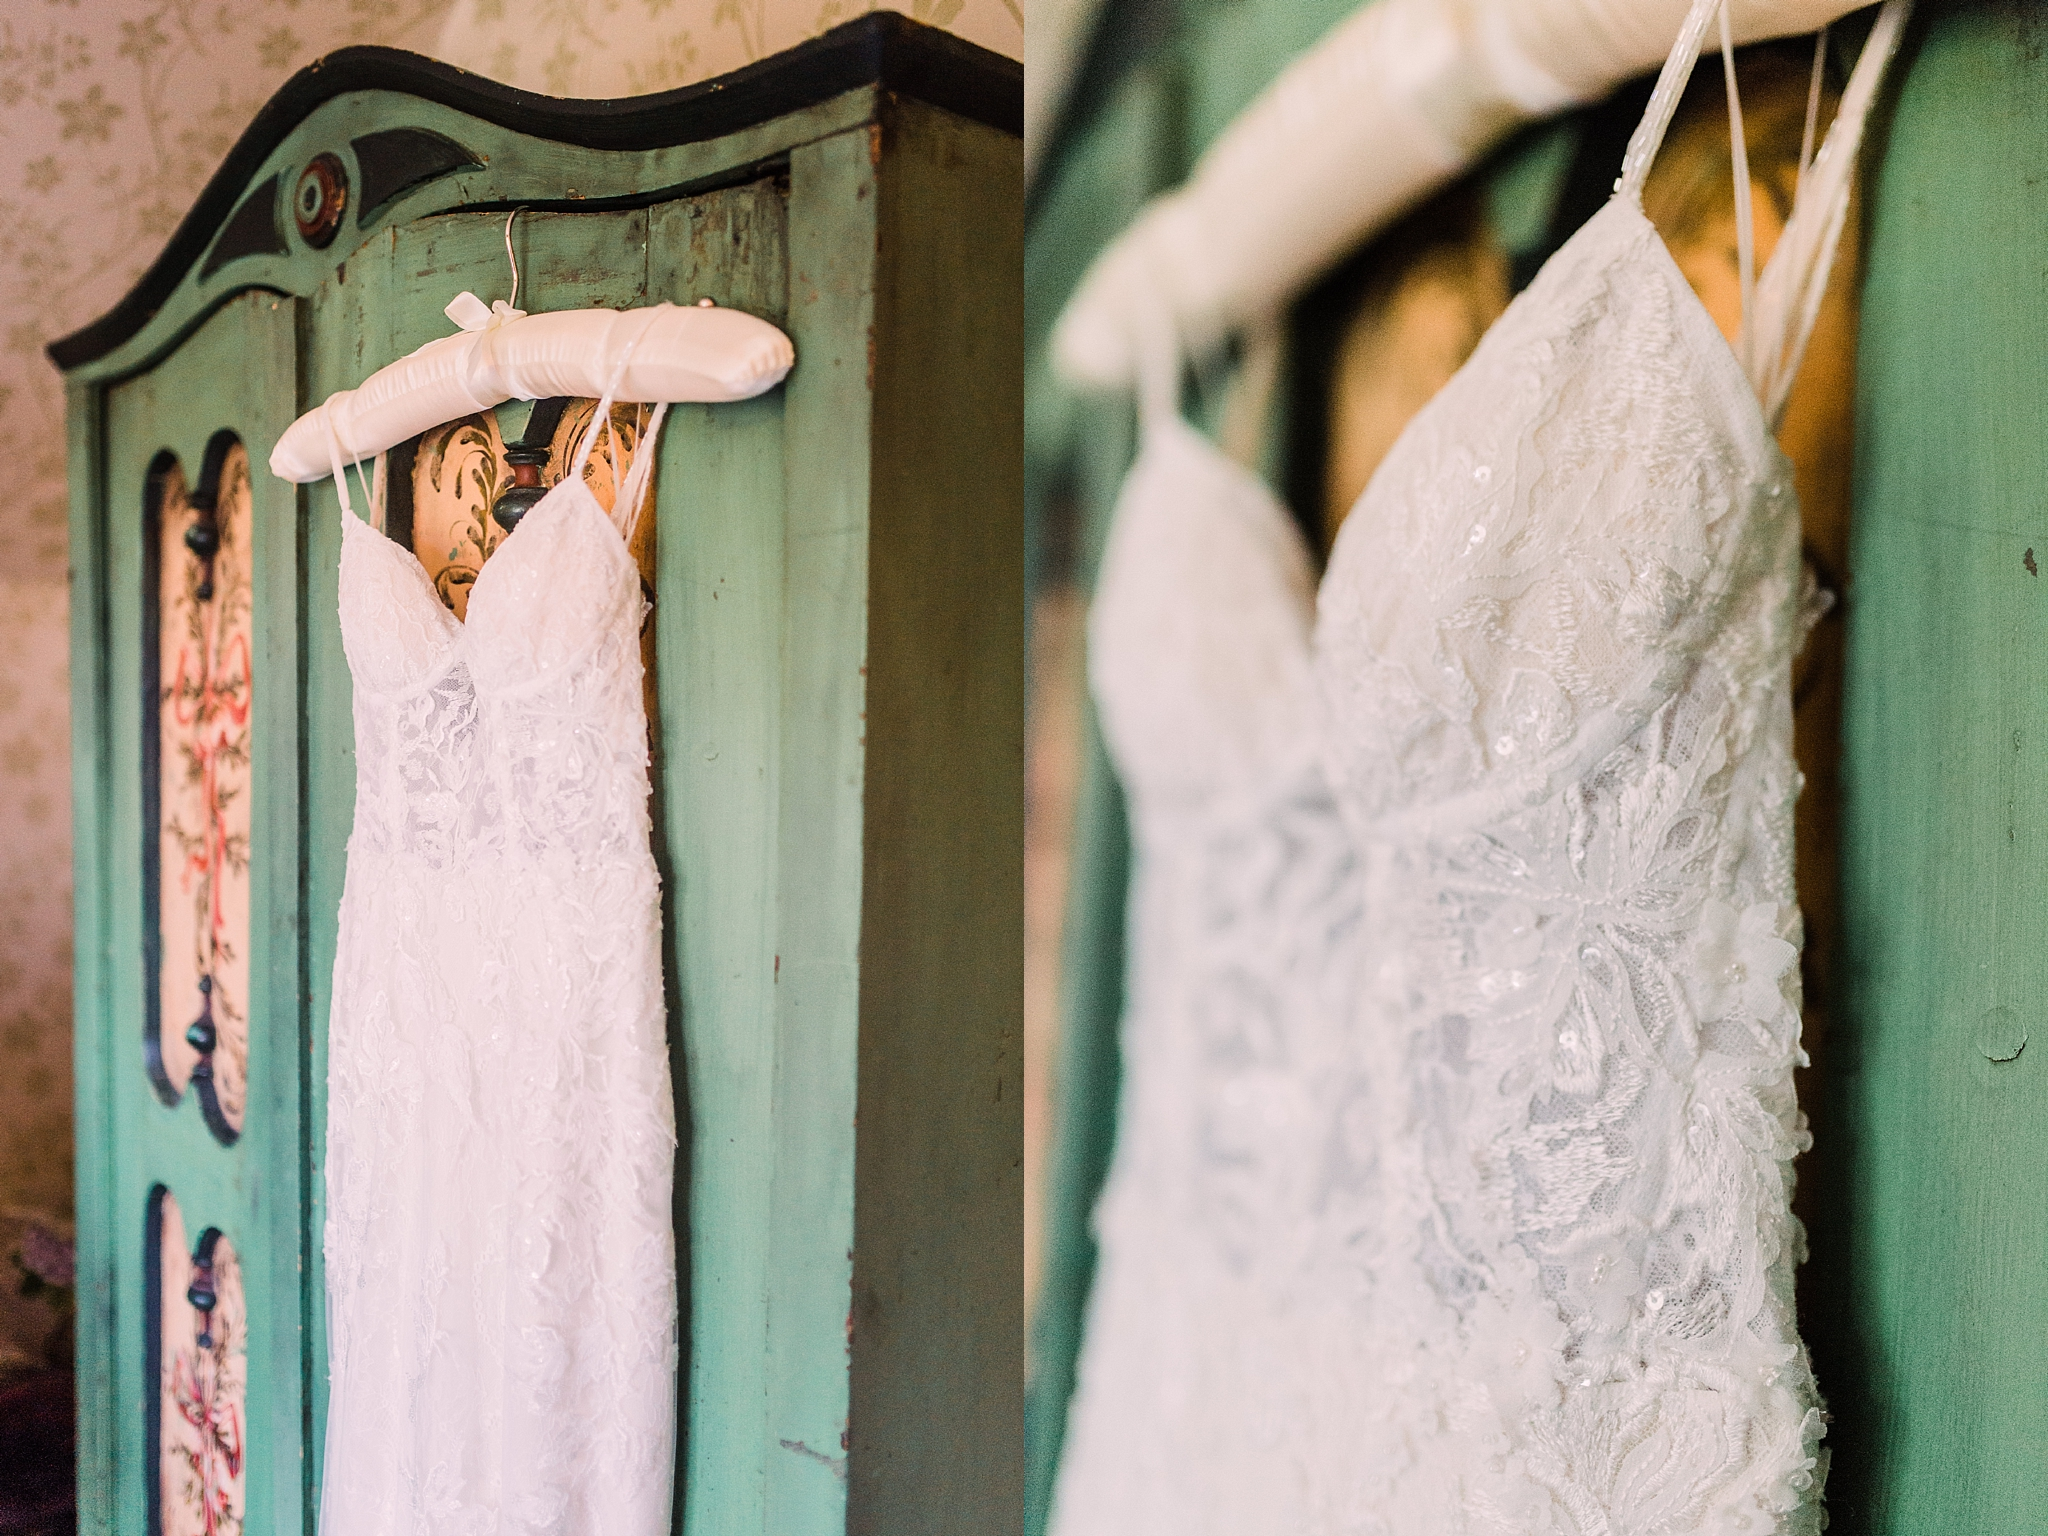 Wedding Dress Hanging on Wardrobe at Pheasant Hotel, Harome